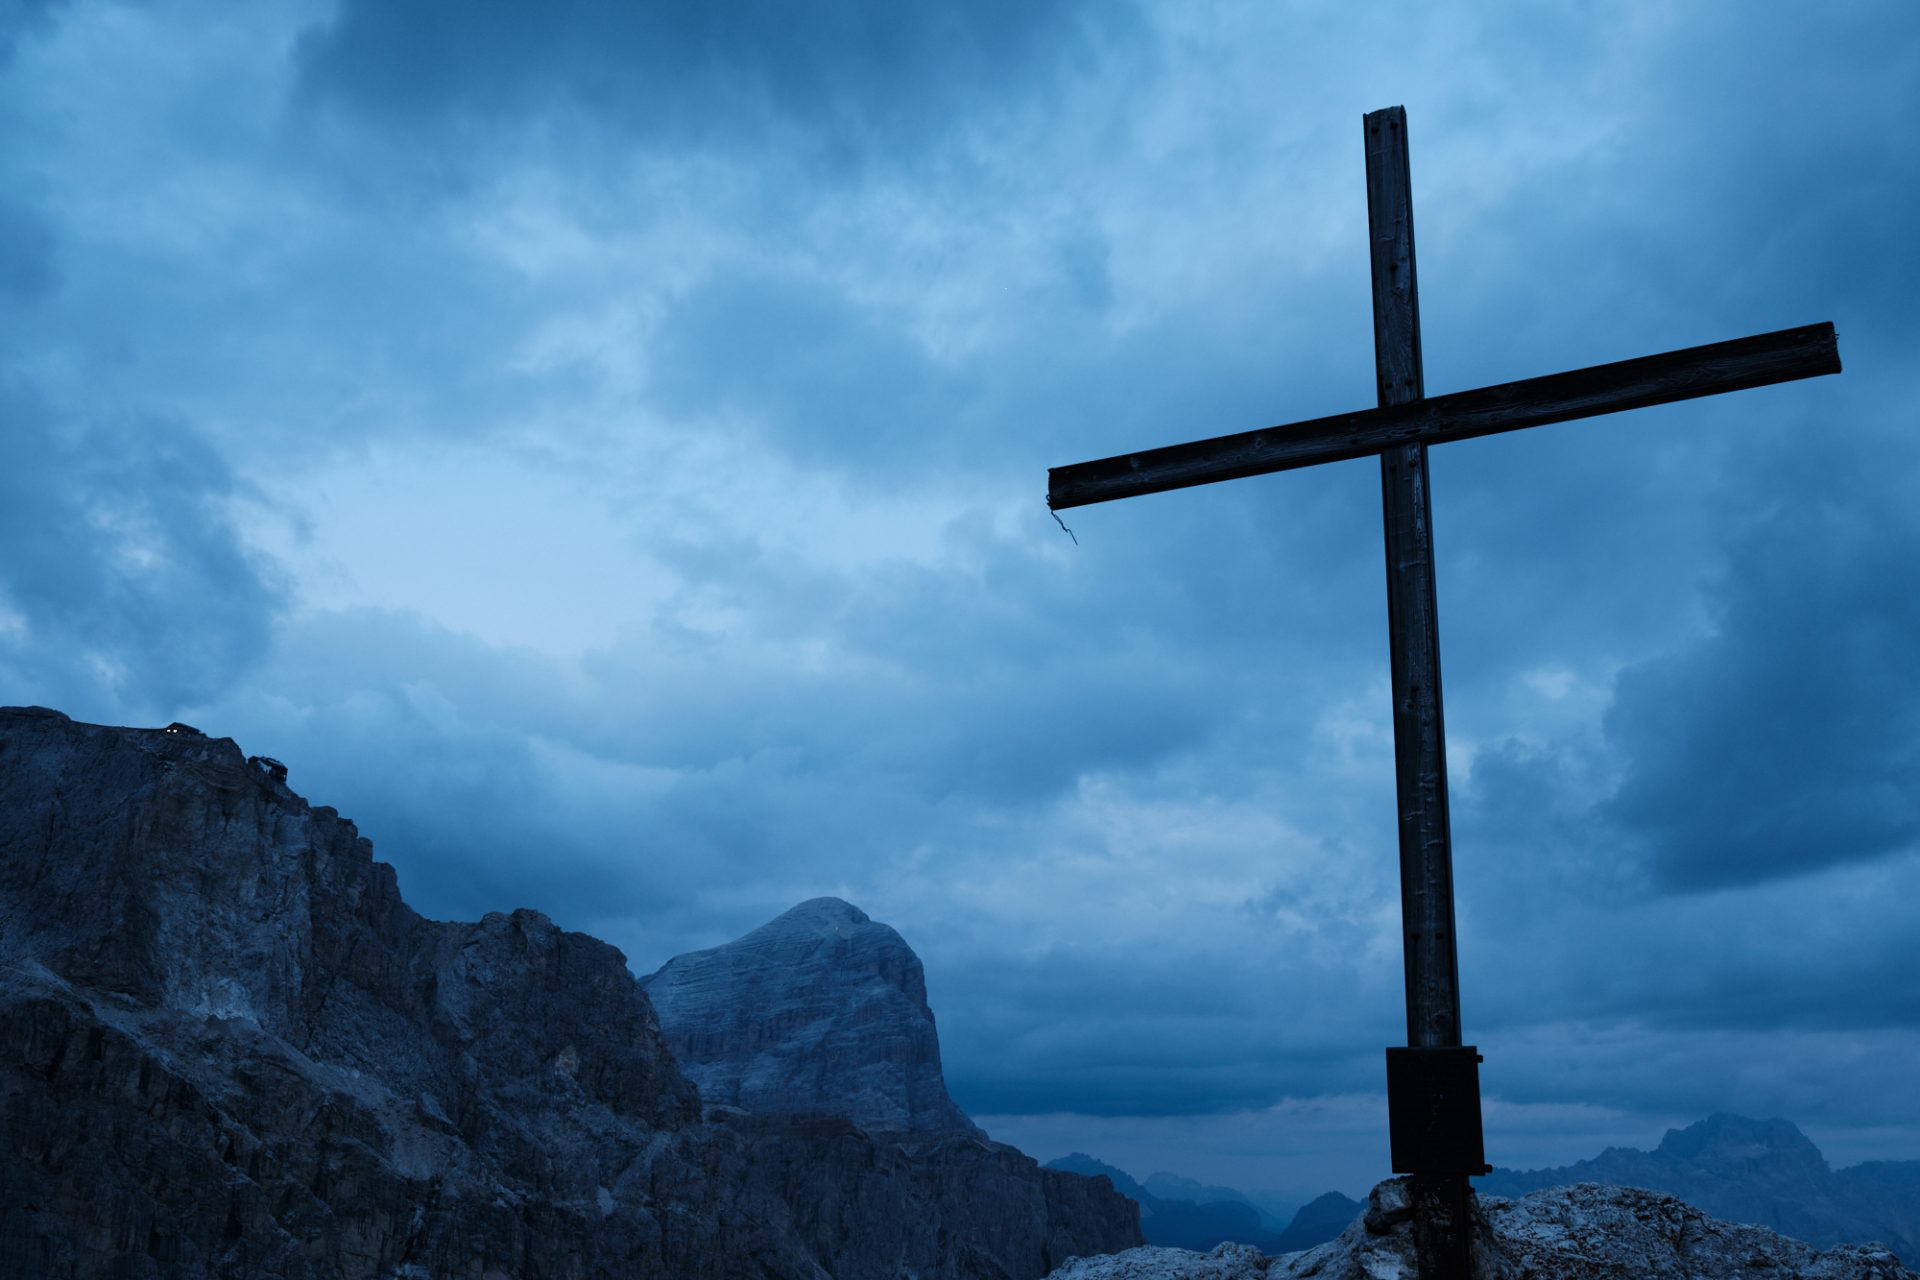 A cross in a mountain area at sunset with a blue clouds covered sky.